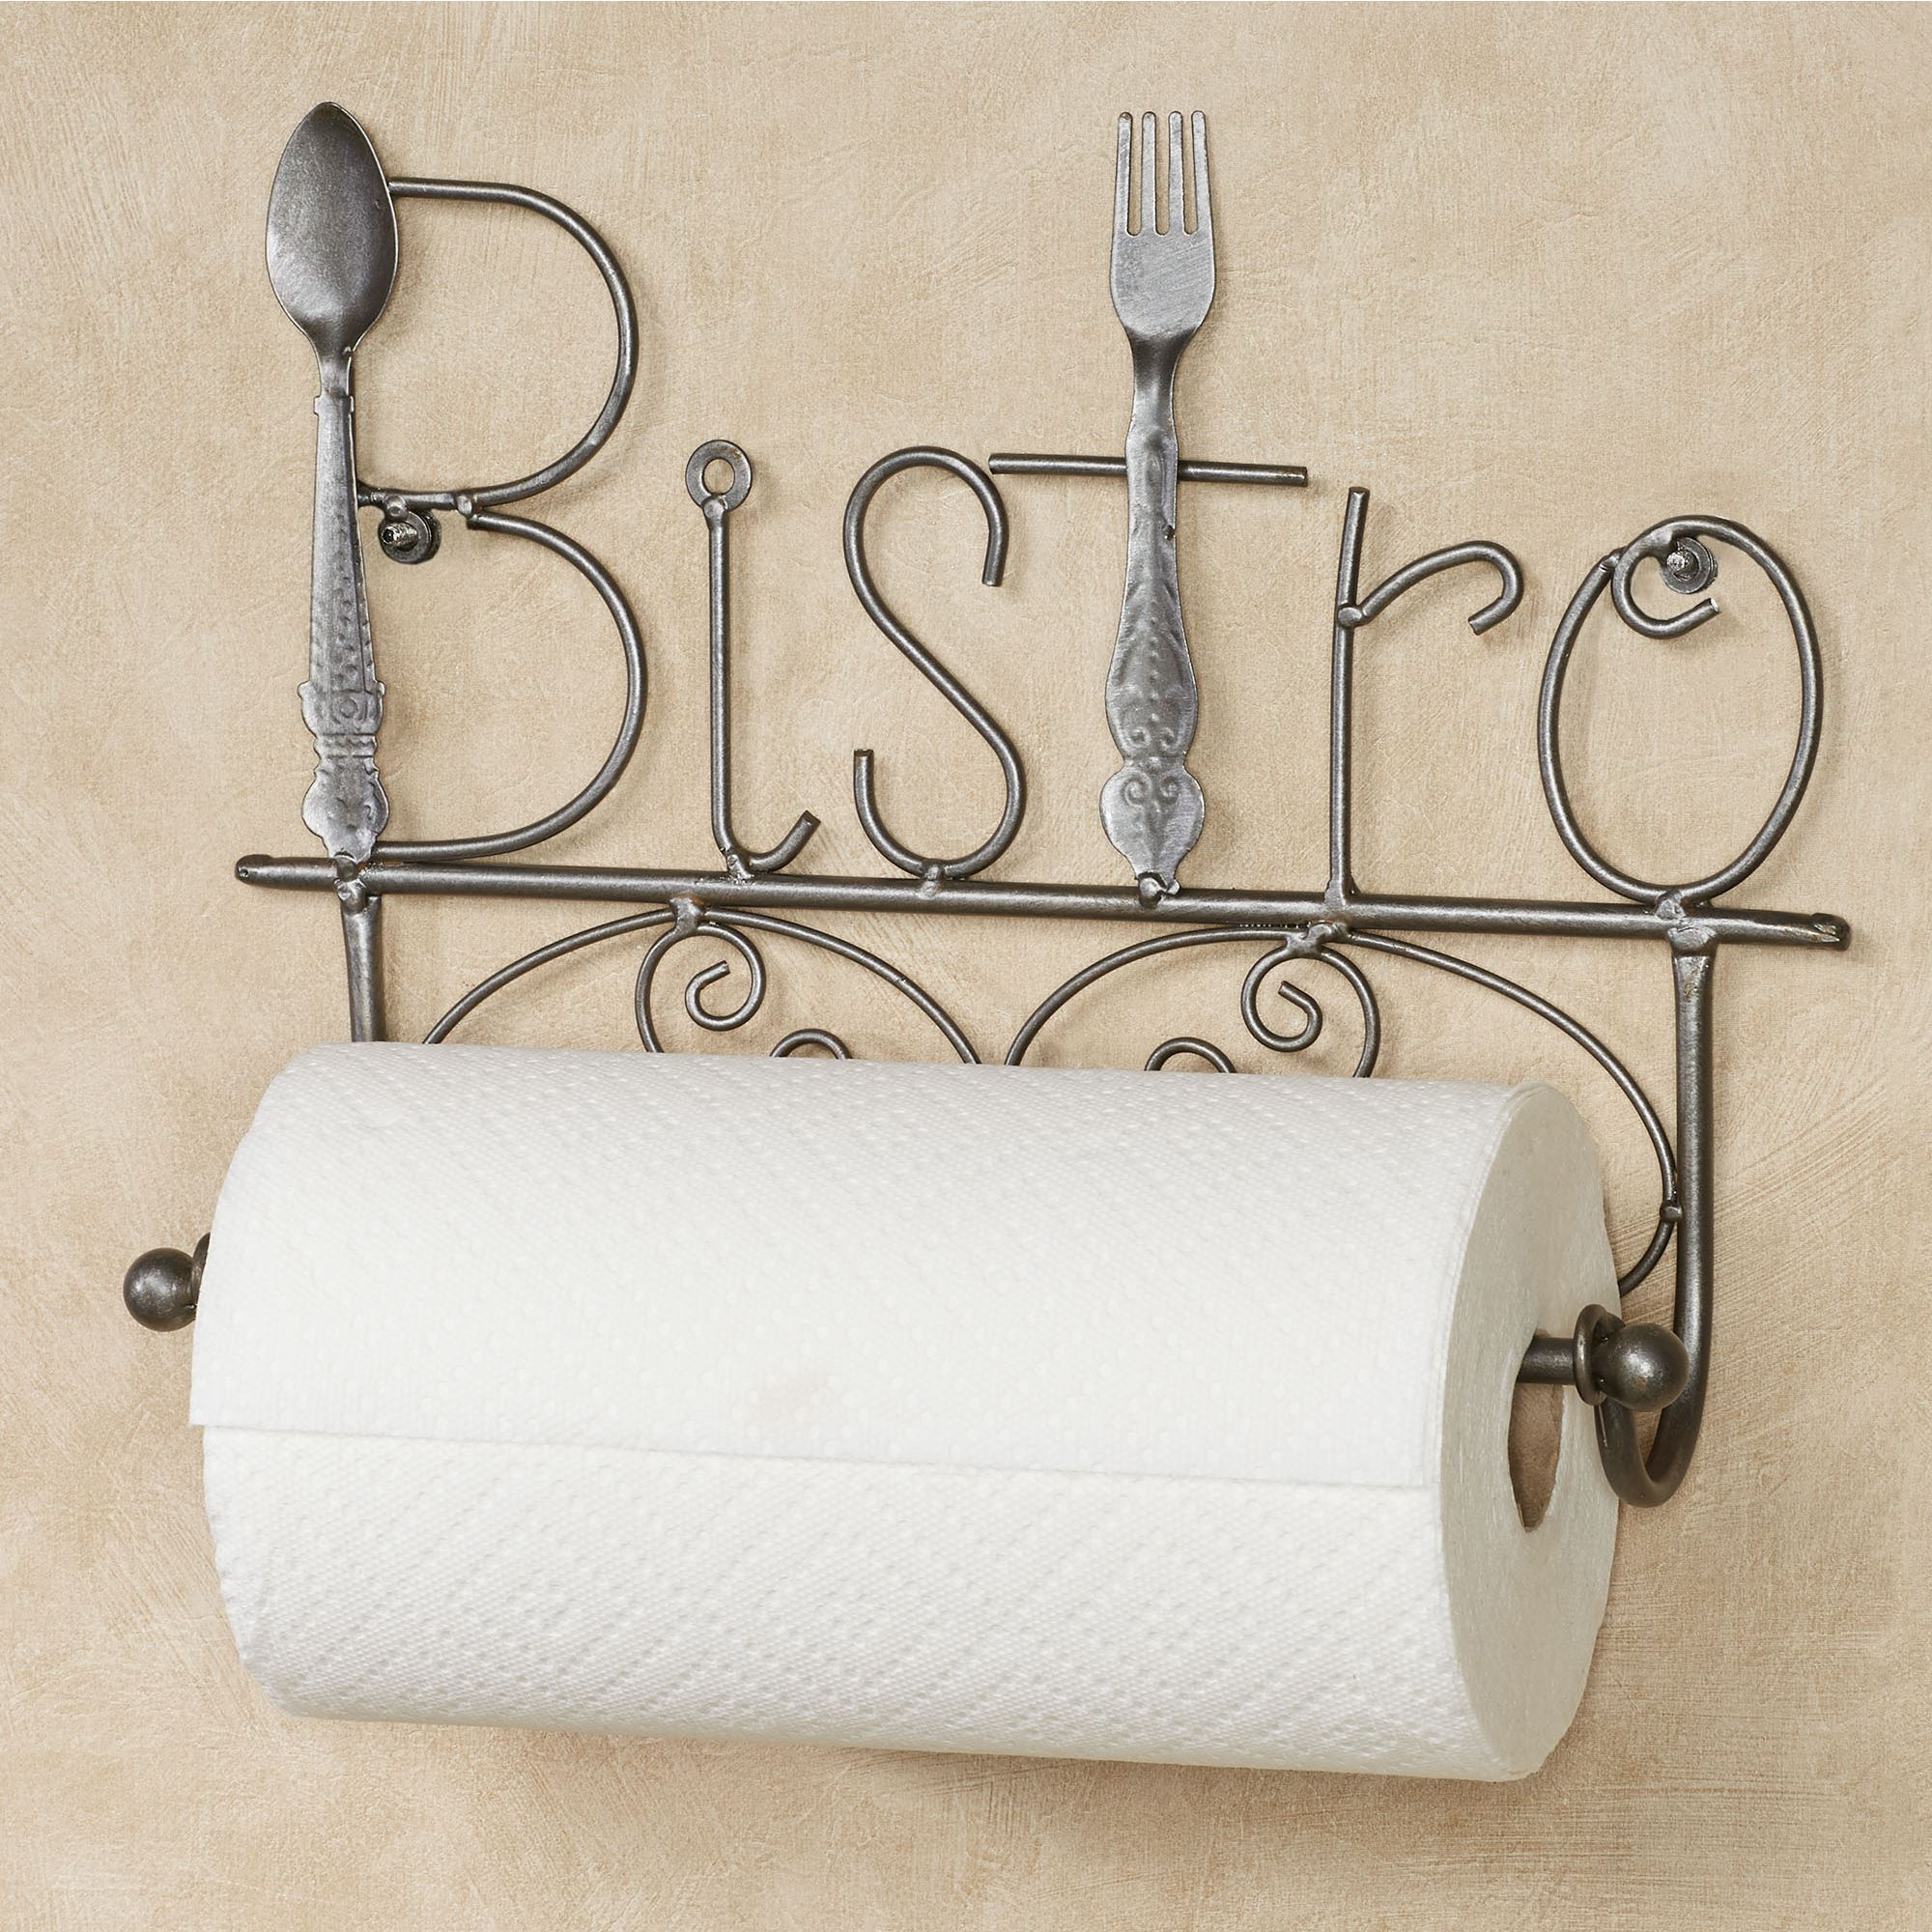 Animal Toilet Paper Holder Stand Bistro Kitchen Metal Wall Paper Towel Holder